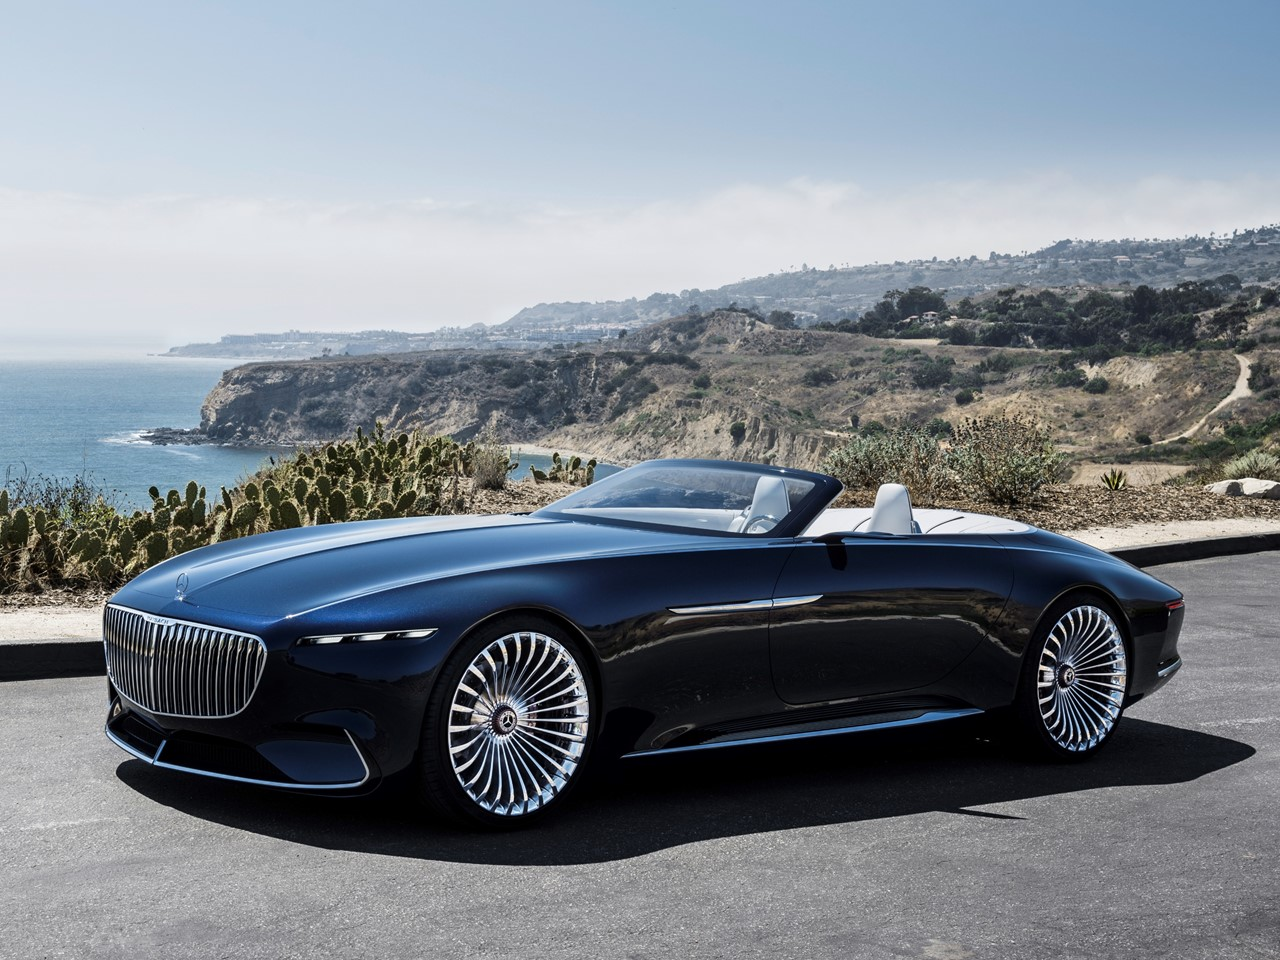 Mercedes-Maybach 3